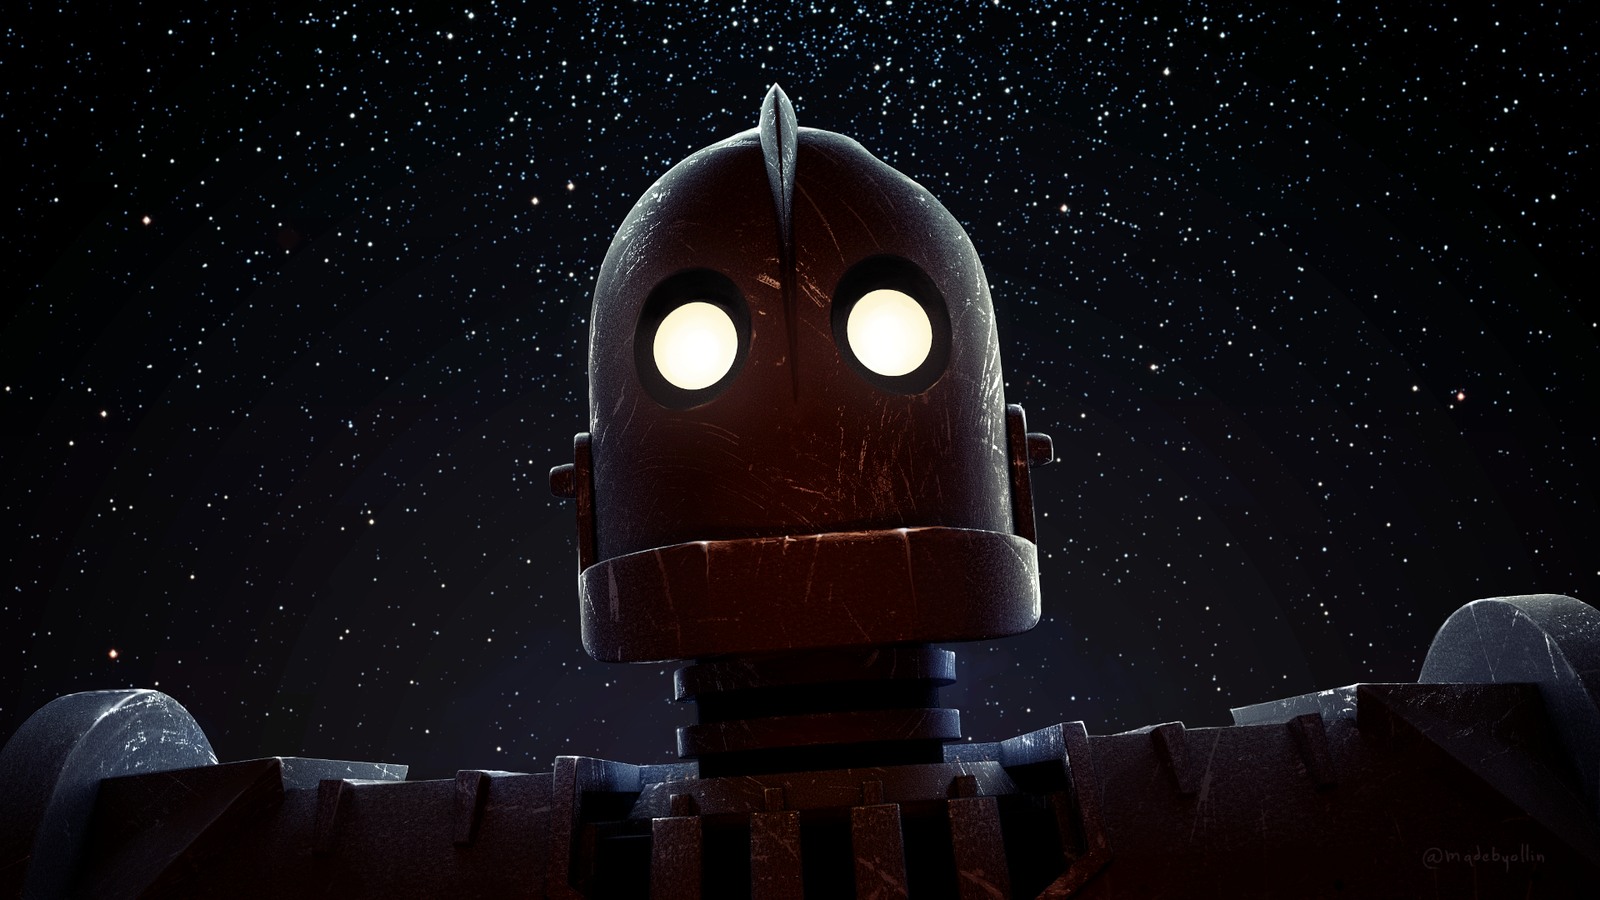 Стальной гигант / The Iron Giant background